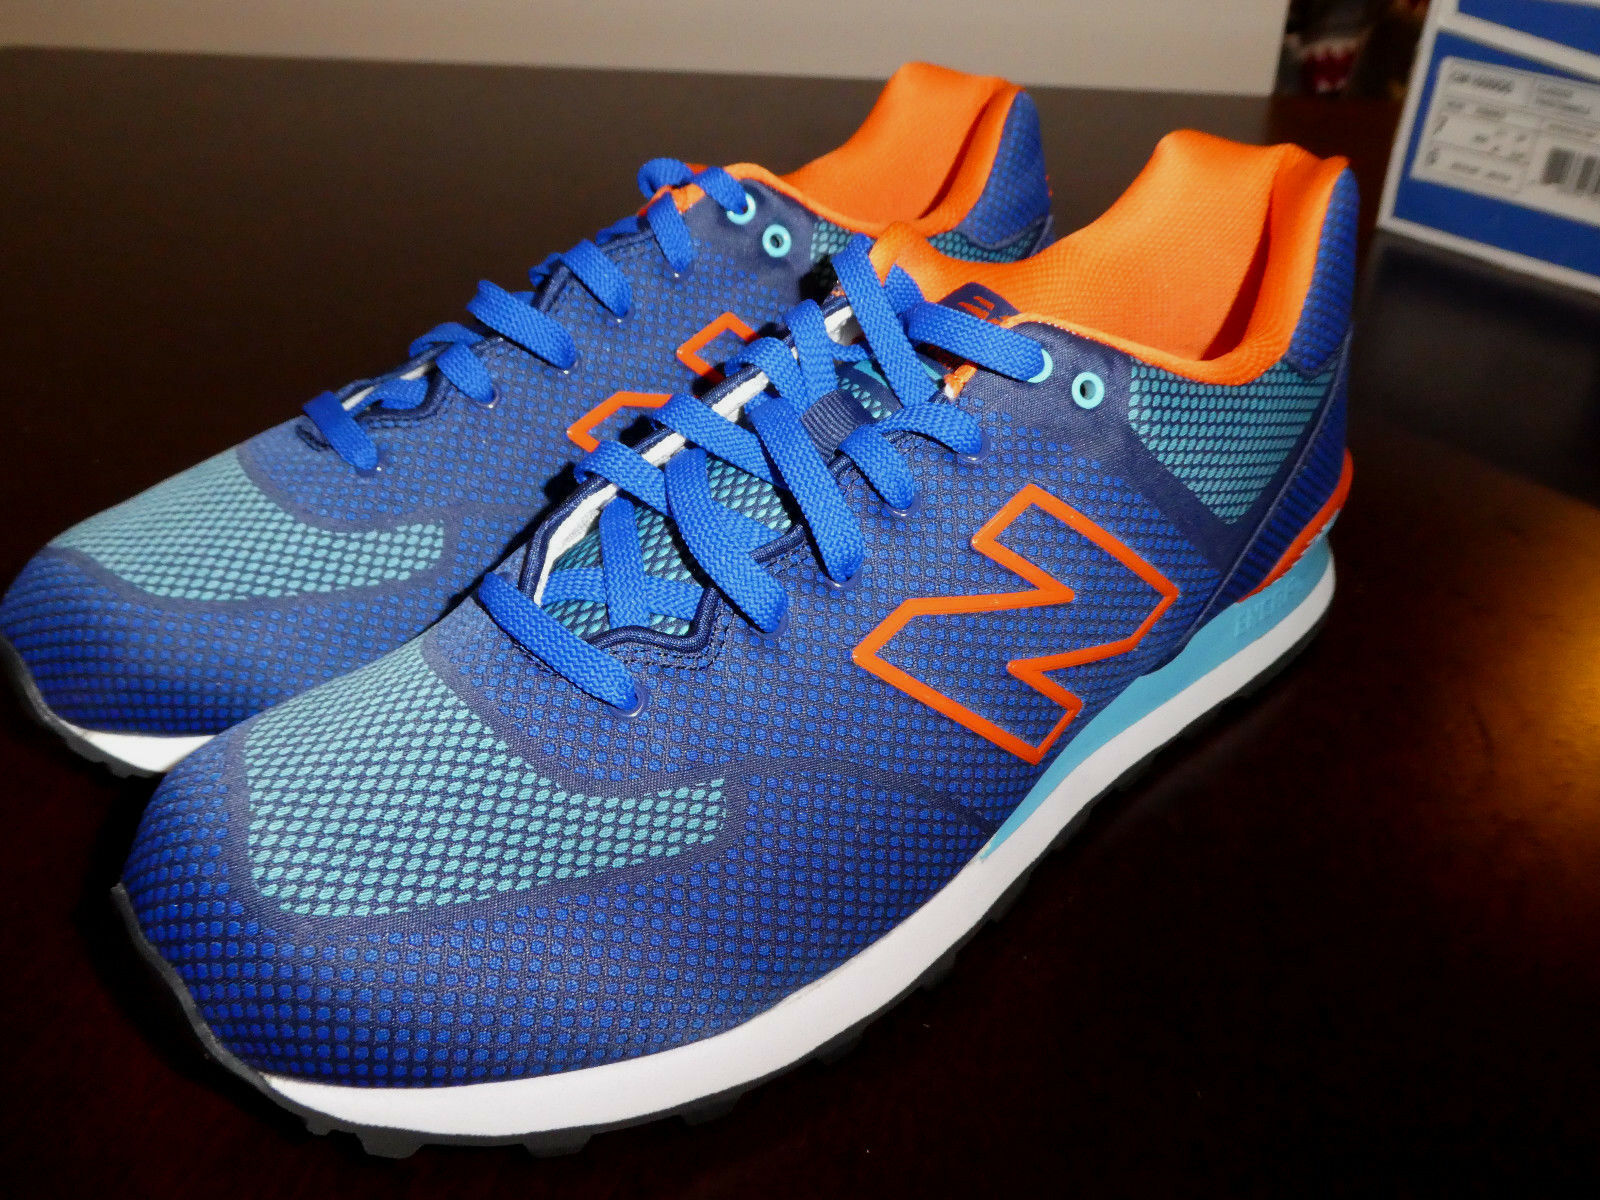 New Balance sneakers 574 shoes mens new sneakers Balance ML574OB 2b11cd